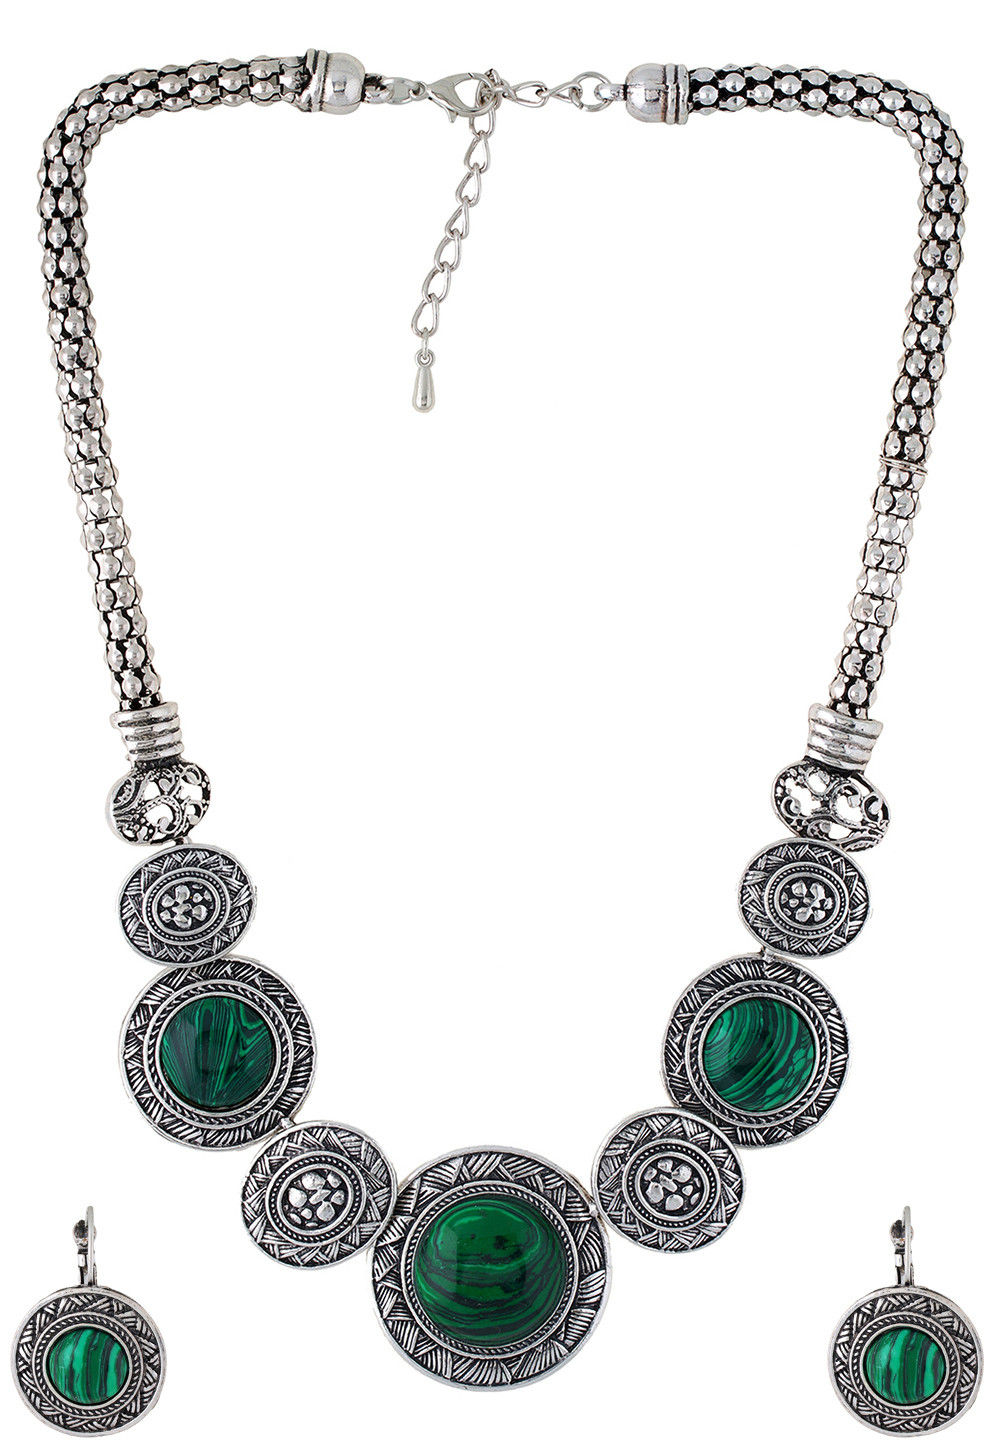 Stone Studded Necklace Set in Green and Silver